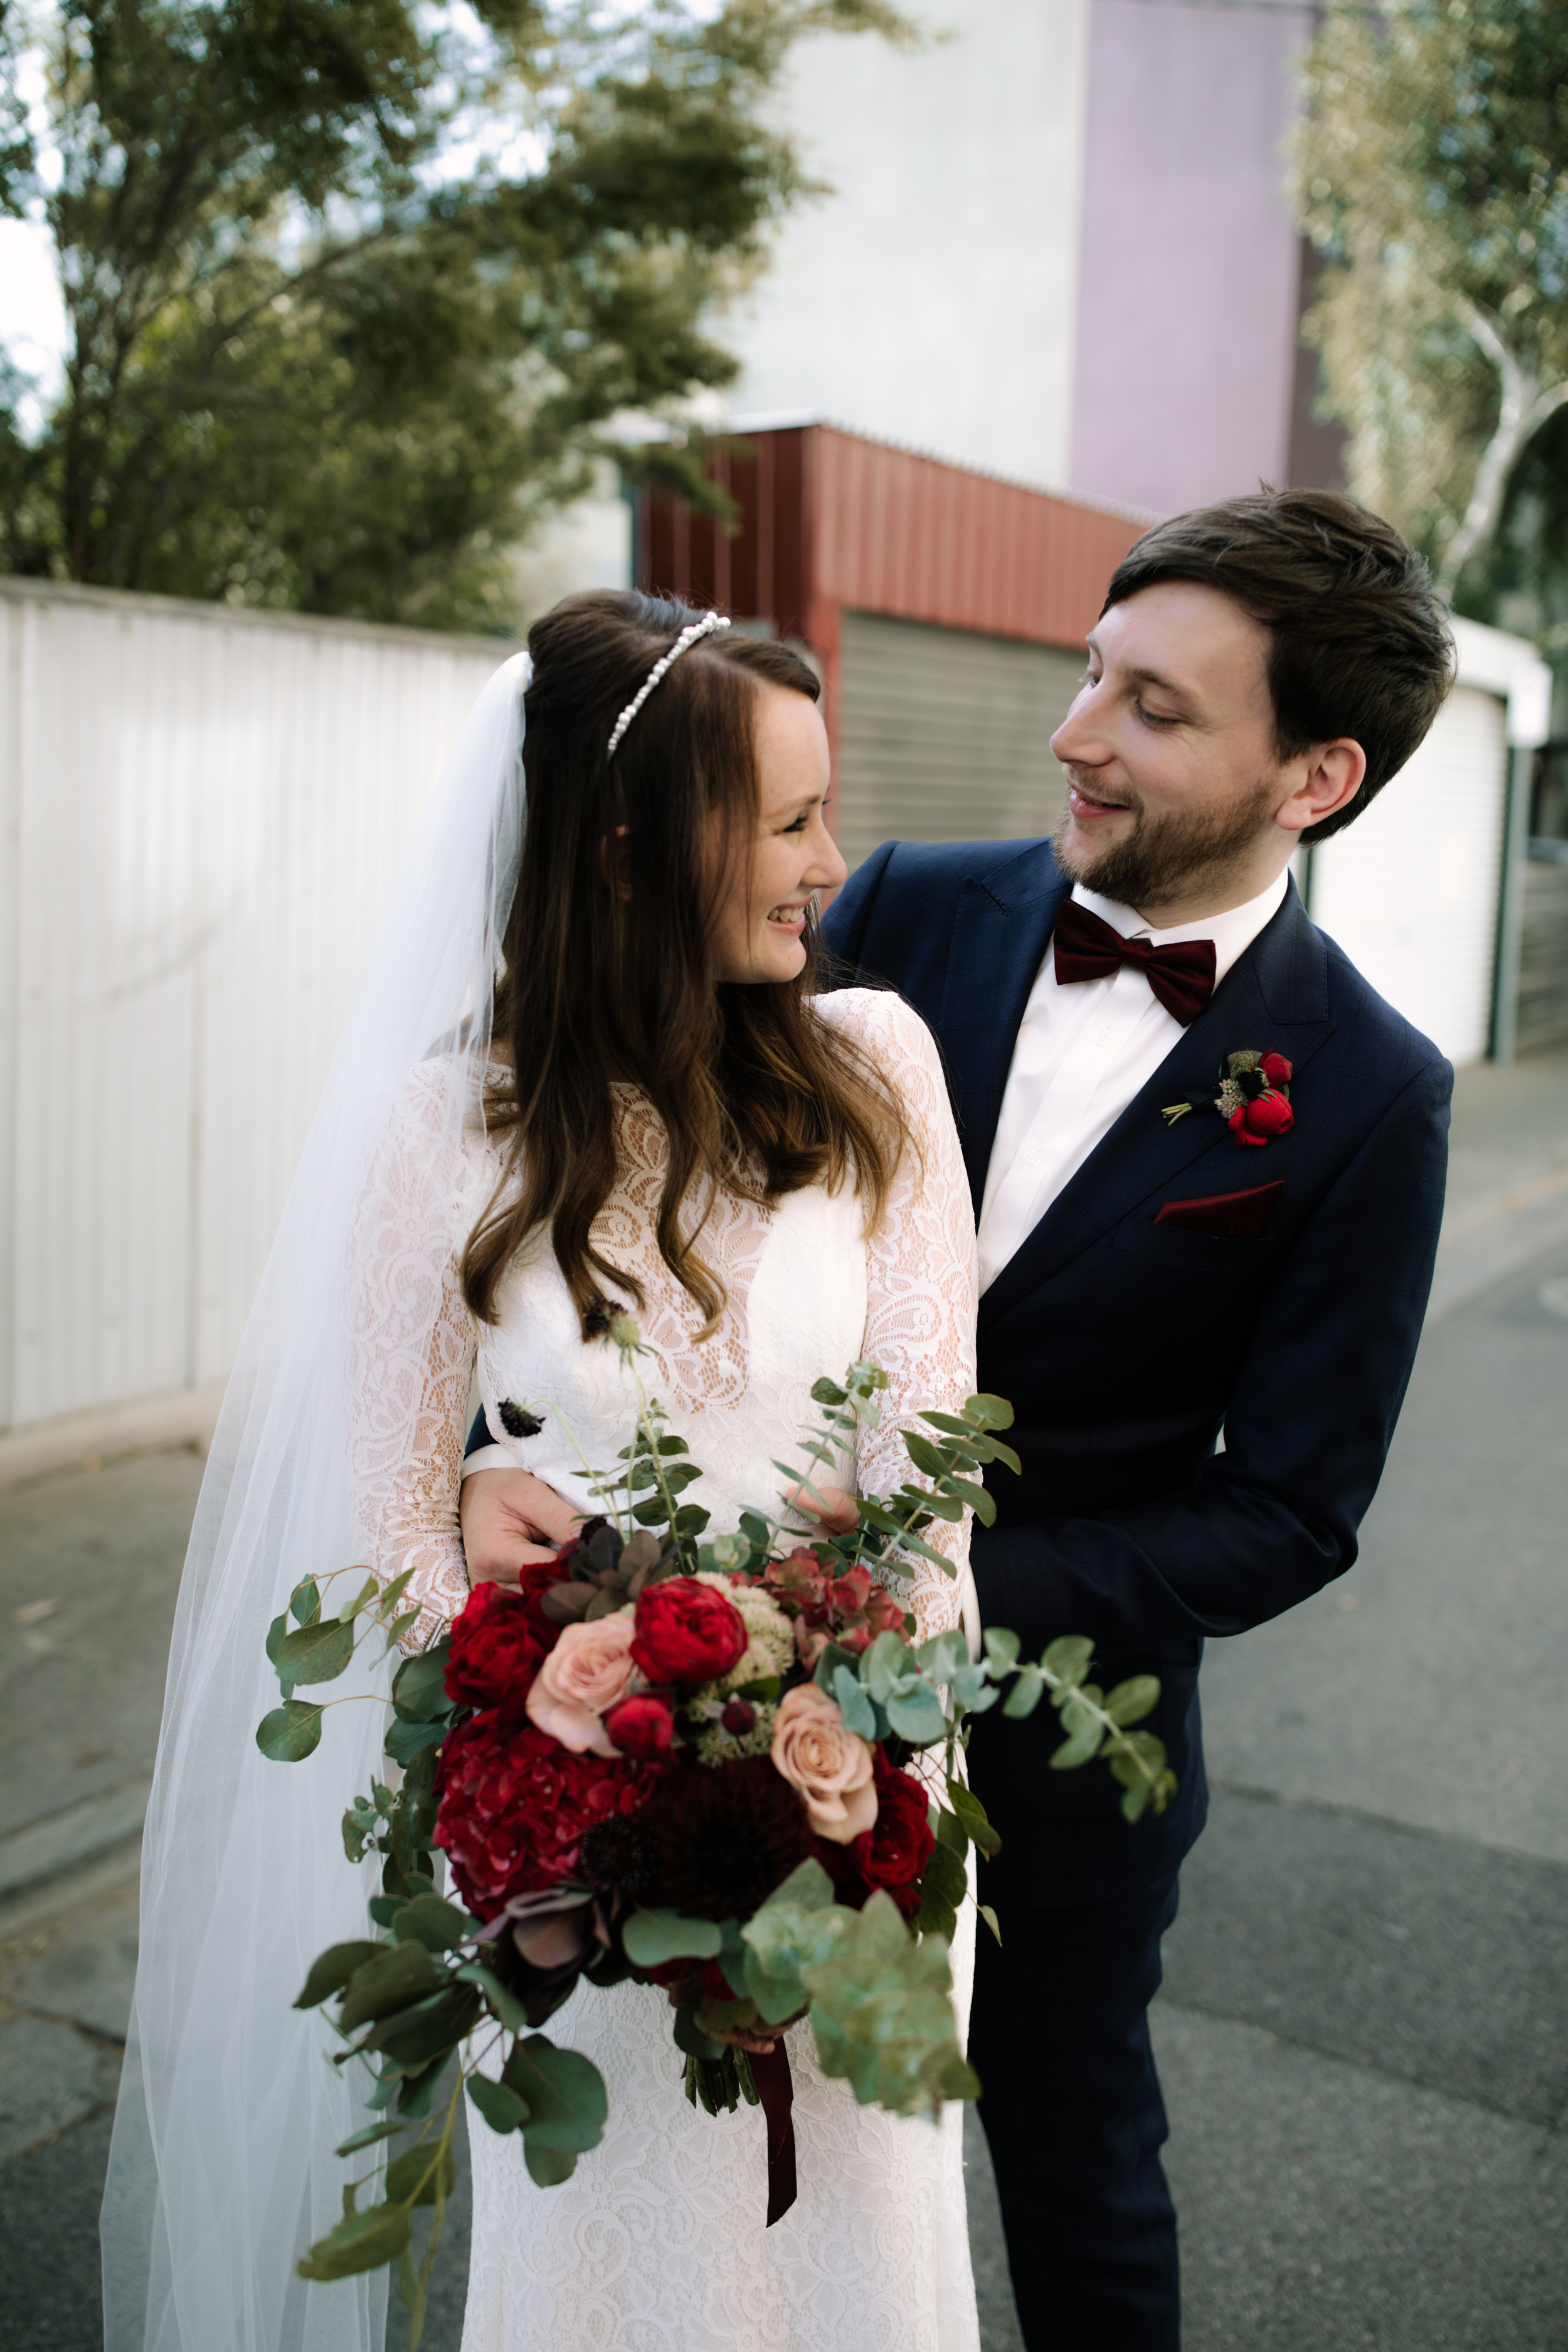 I_Got_You_Babe_Weddings_Emily_Matt_Rupert_Glasshaus_Melbourne0120.JPG